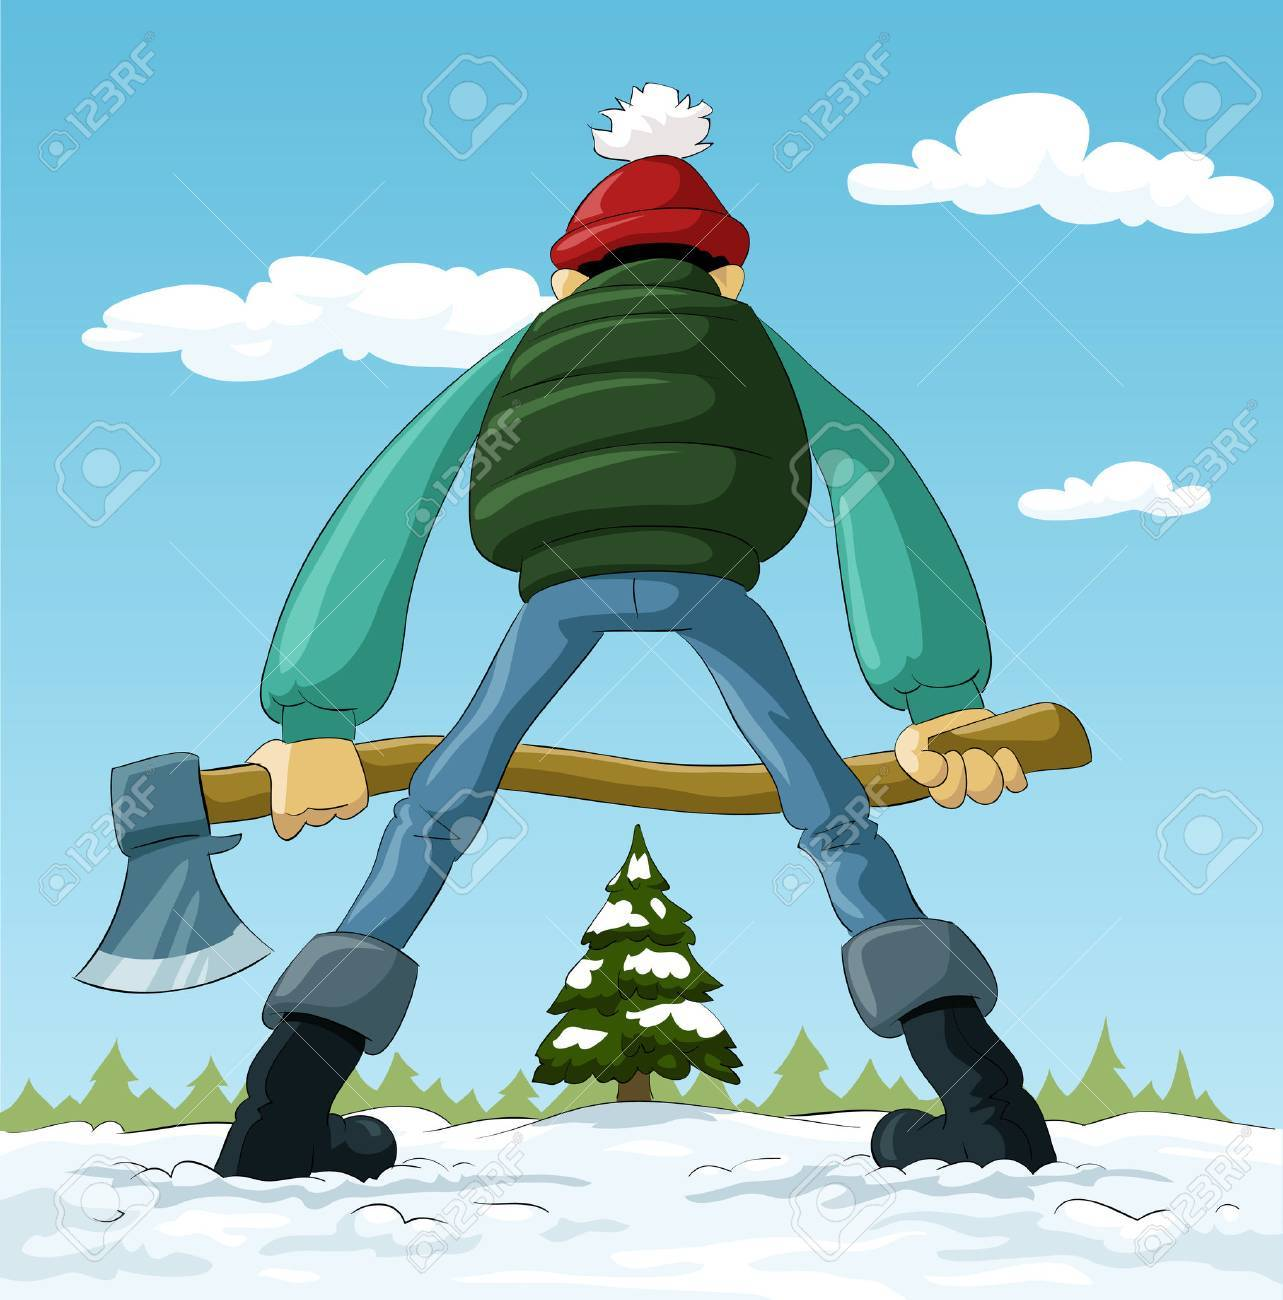 Lumberjack with an ax and a Christmas tree, vector - 7930645